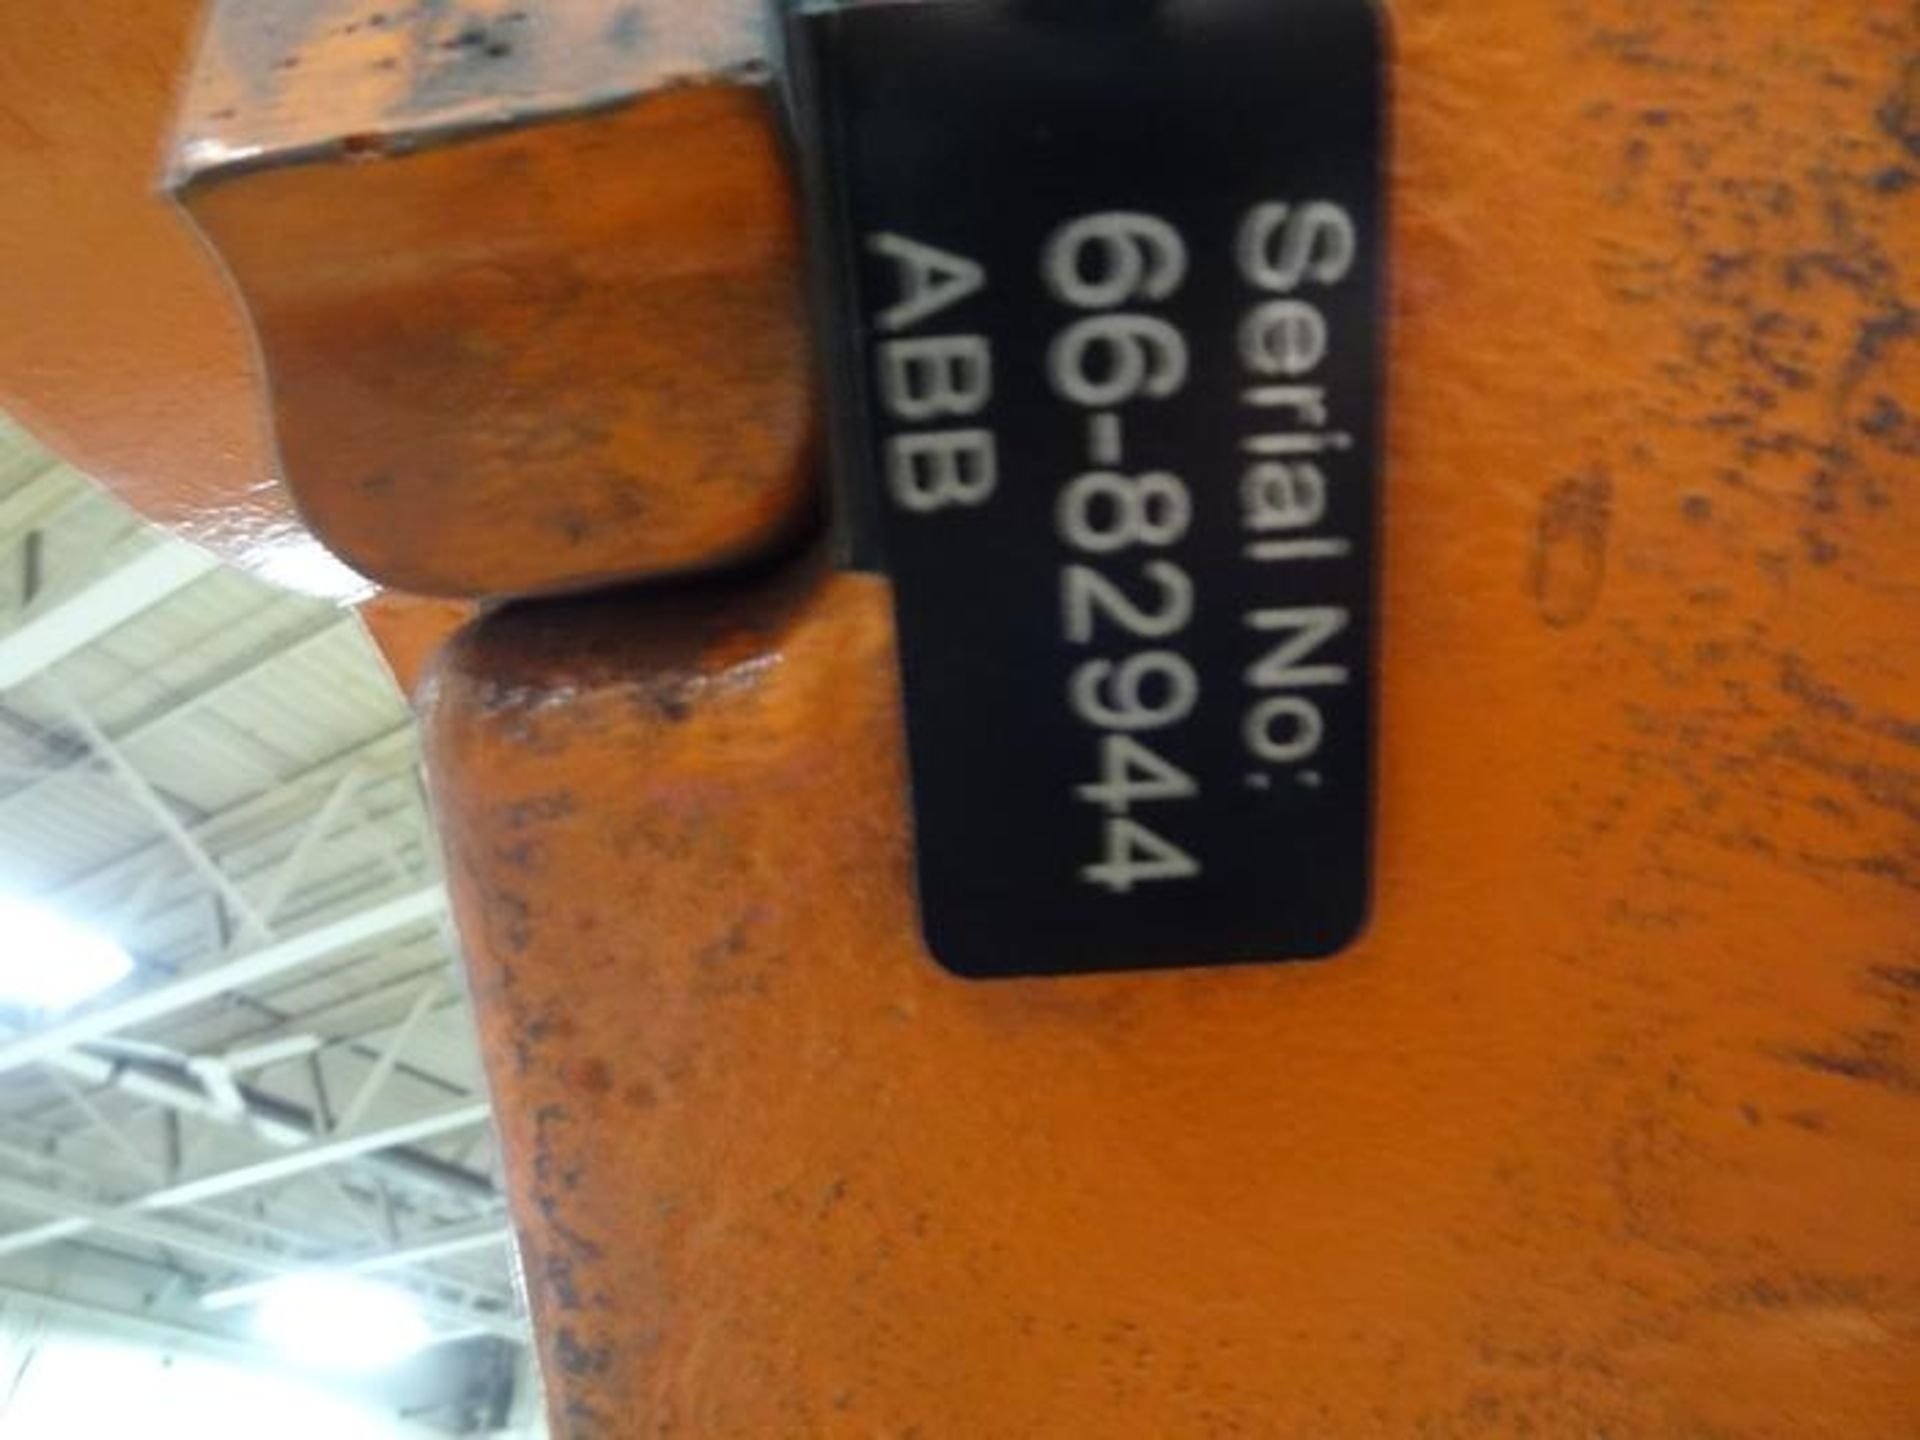 Lot 49 - ABB ROBOT IRB 6640 2.55/235KG WITH IRC 5 CONTROL, TEACH & CABLES, YEAR 2012 SN 66-82944